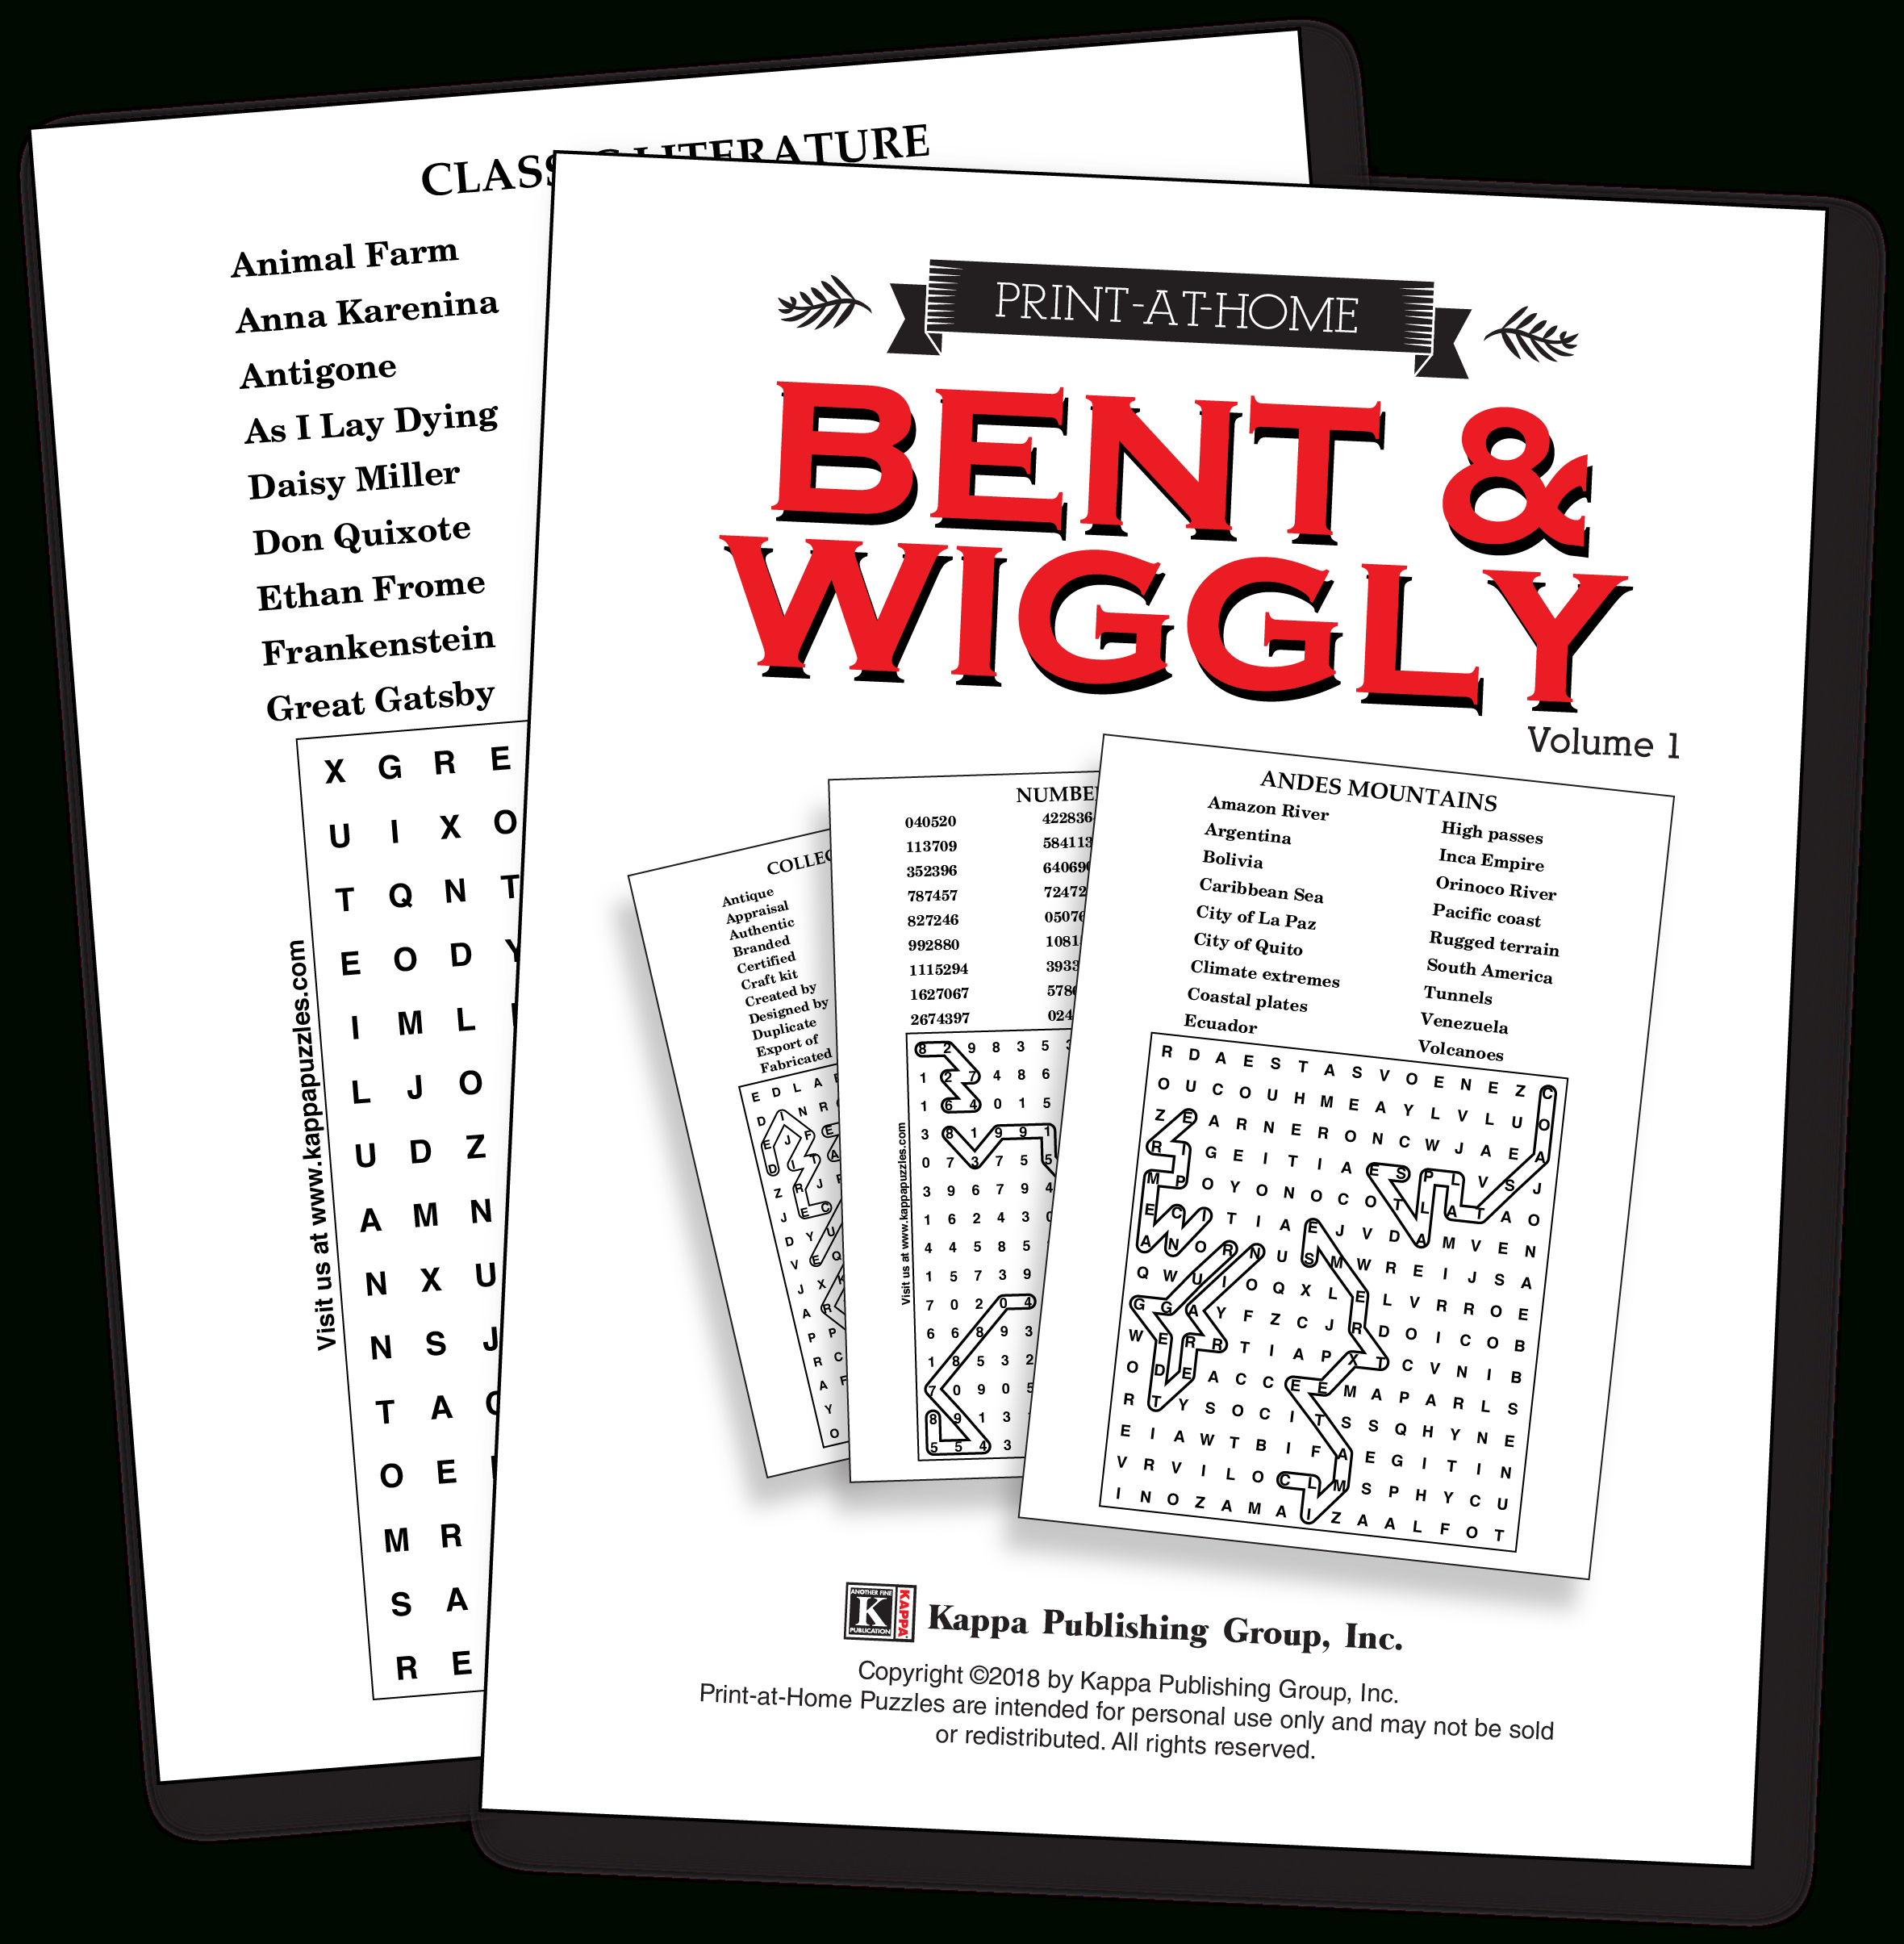 Print-At-Home Bent & Wiggly